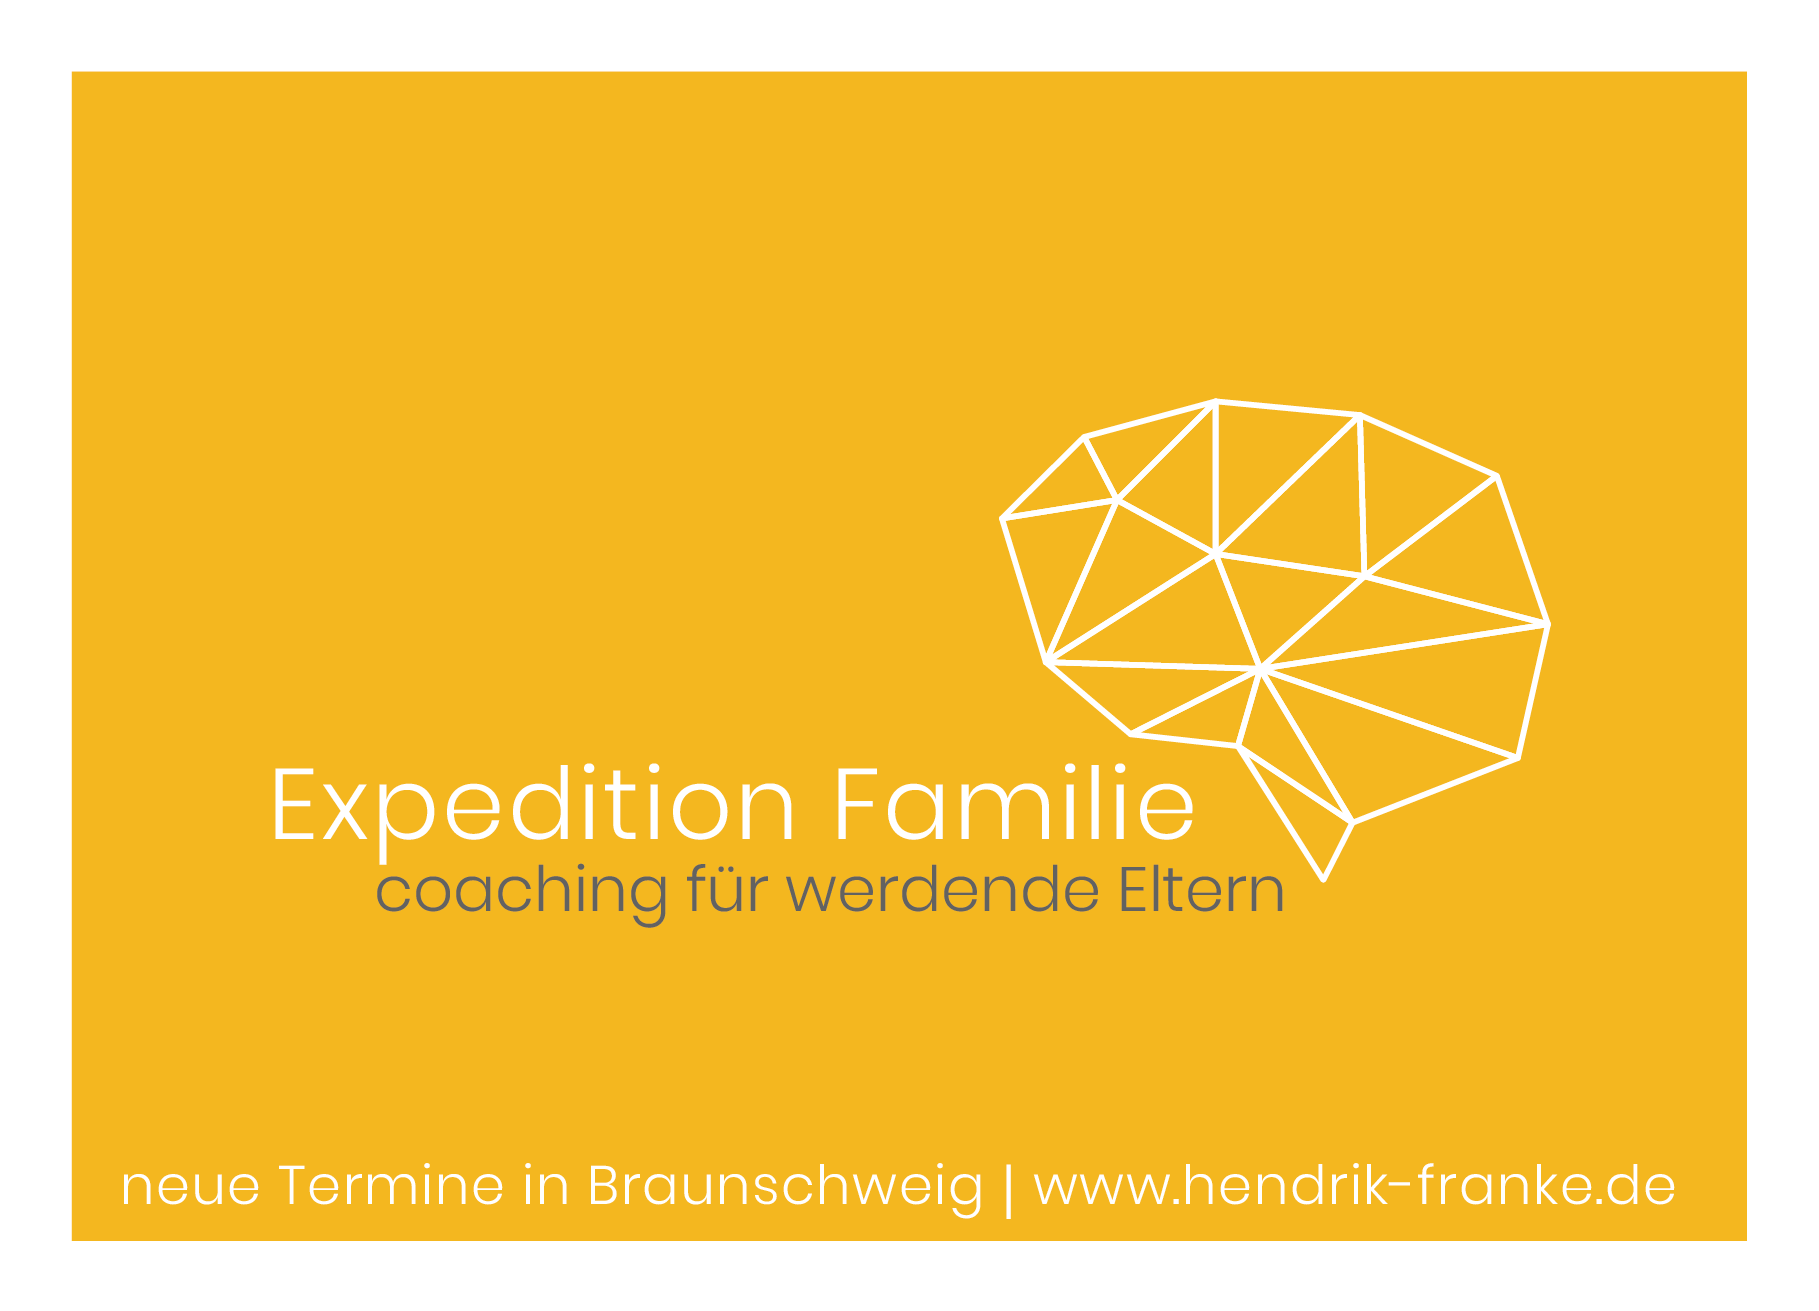 Expedition_Familie_vorne